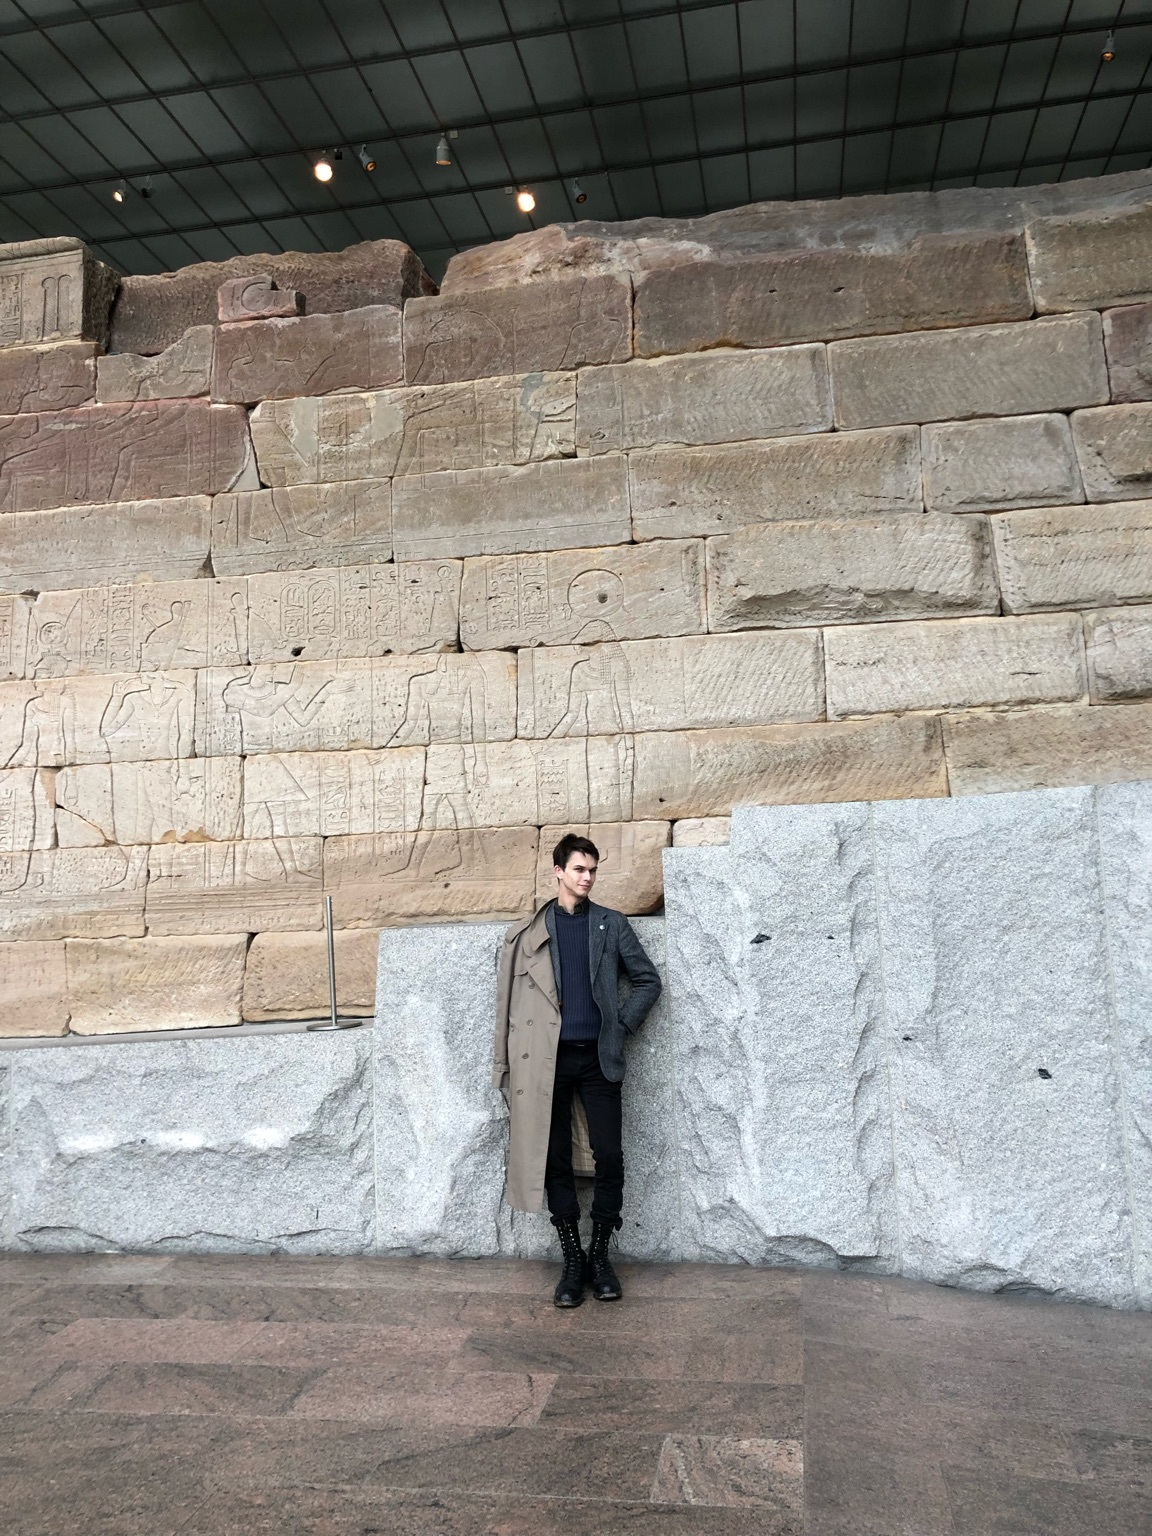 Myself, outside the Temple of Dendur, Metropolitan Museum of Art, Manhattan, February 2019. The carvings behind me show the Imperator Augustus making offerings to various deities of the Egyptian pantheon.